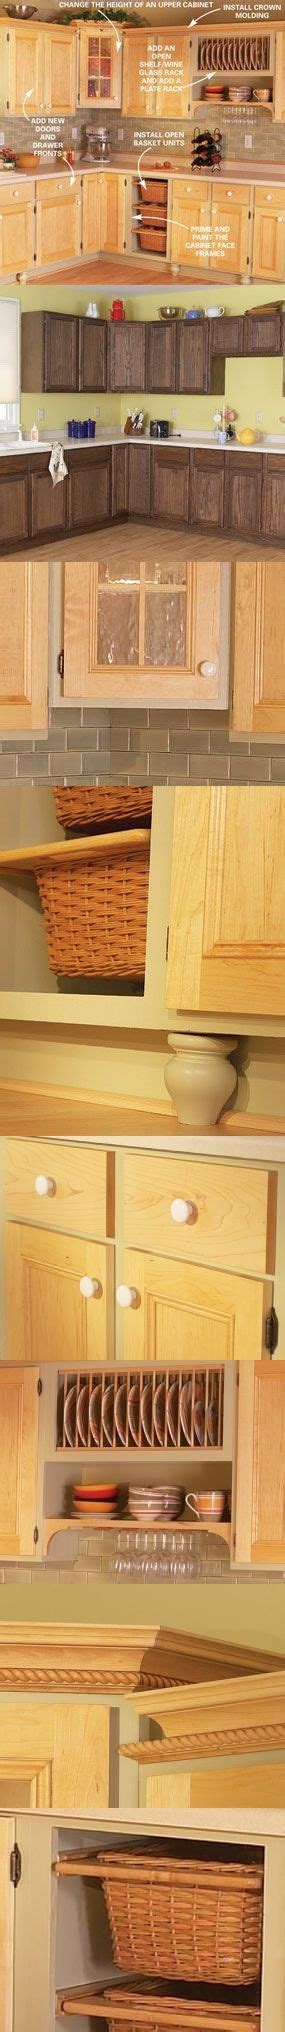 kitchen cabinet facelift ideas 124 best images about the kitchen on pinterest the